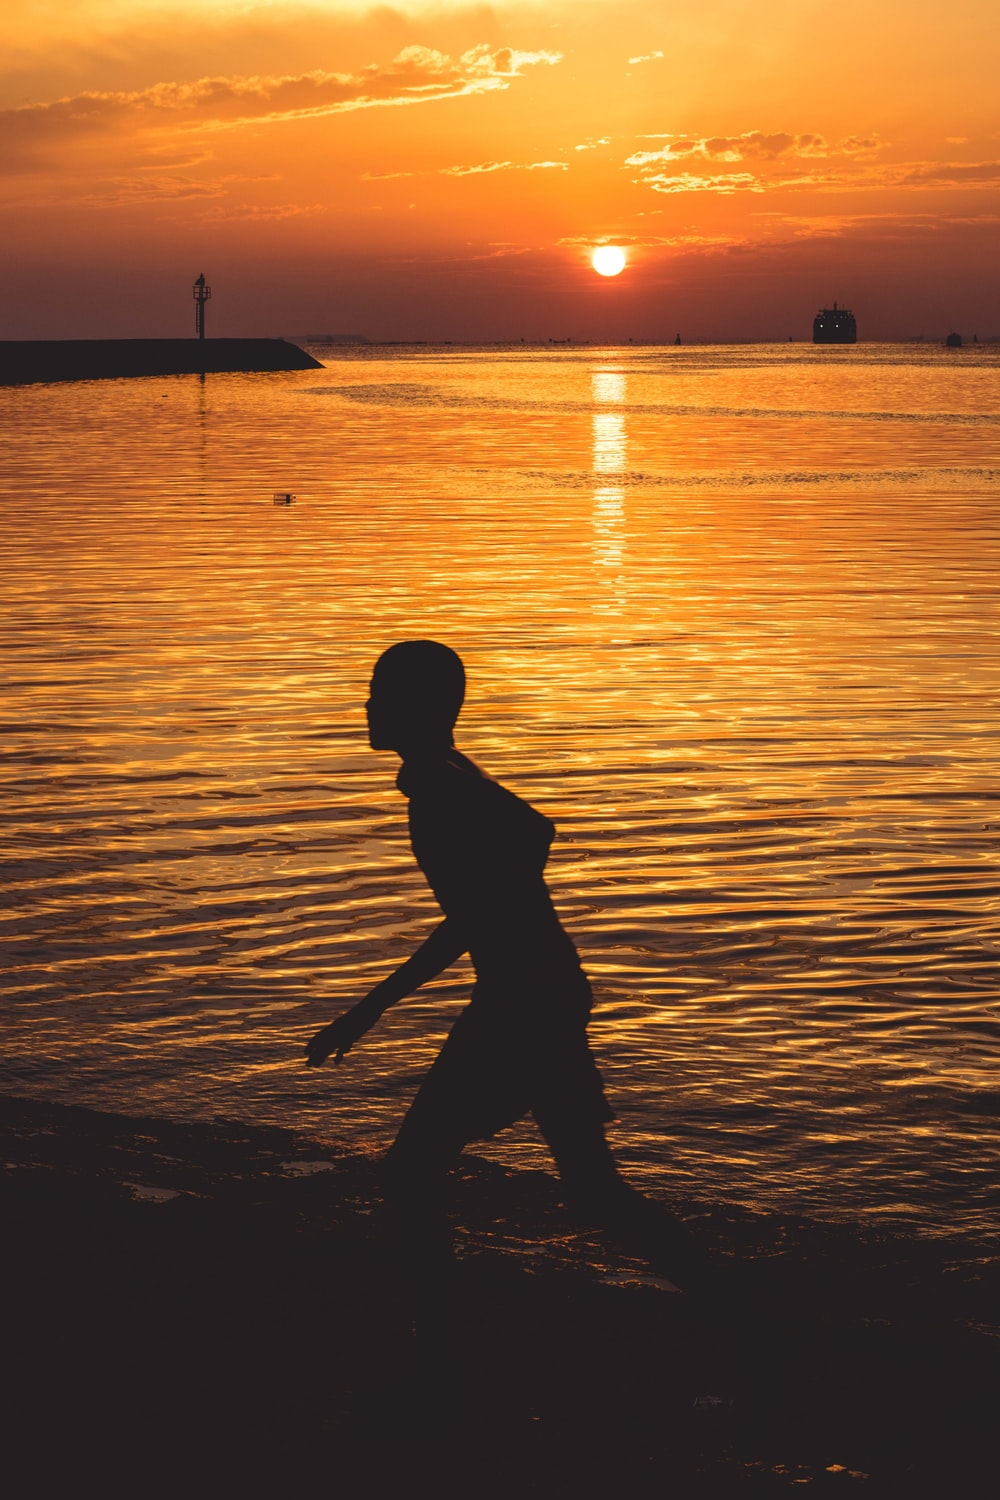 silhouette of person on seashore during sunset